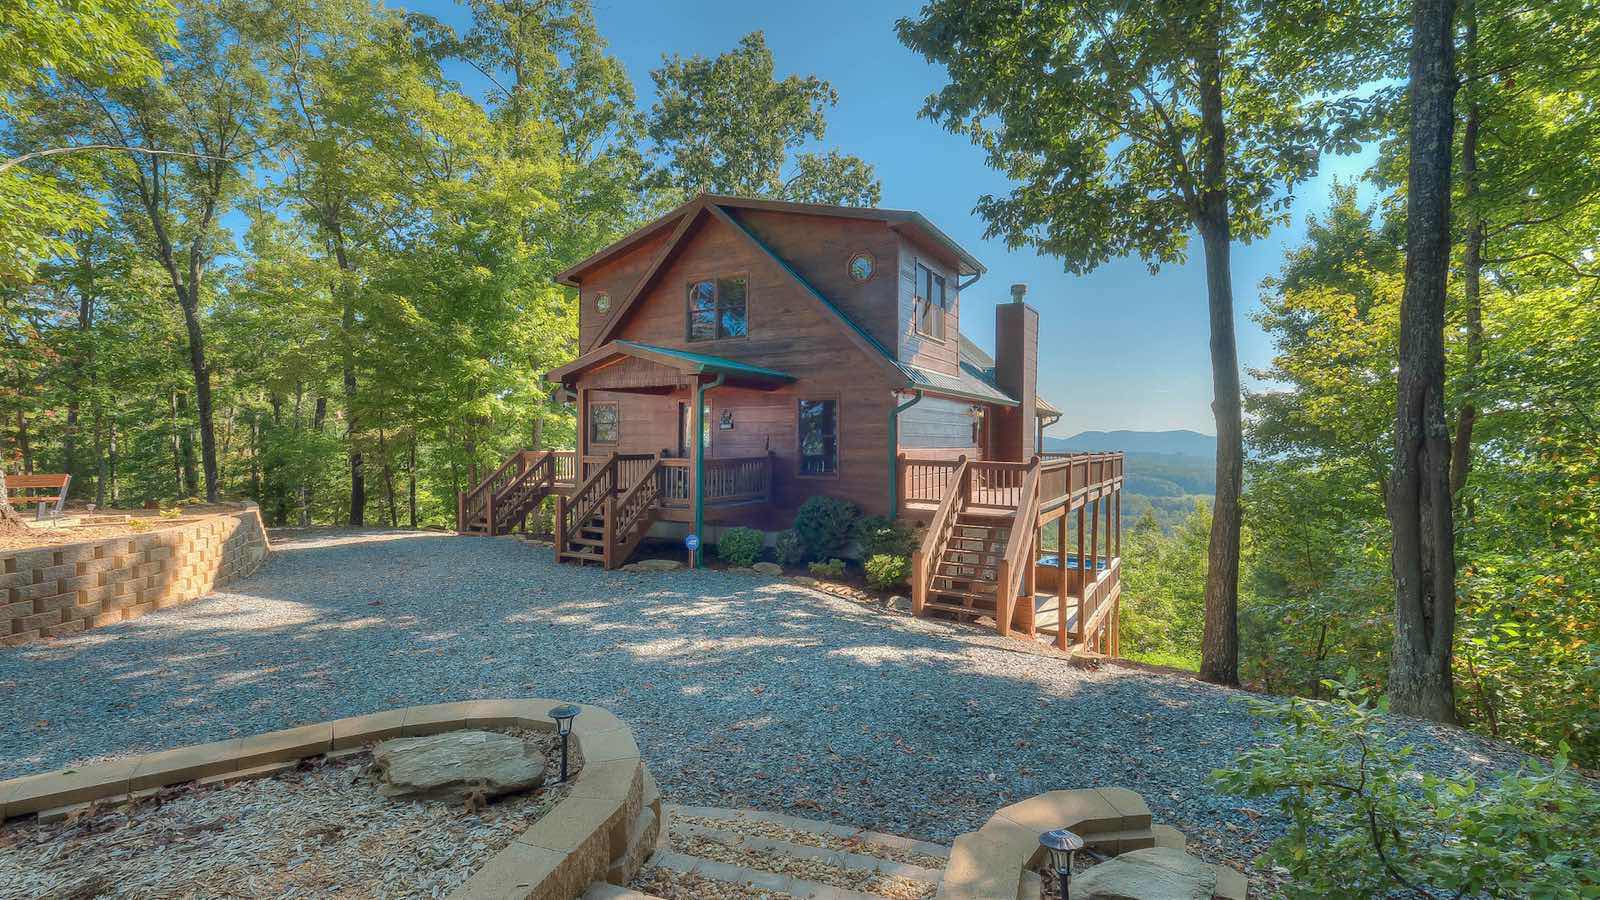 awaits cabins blue ridge of reviews laurel beautiful mountain in rentals mlcr mountains cabin united georgia photo x states rent aska adventure for